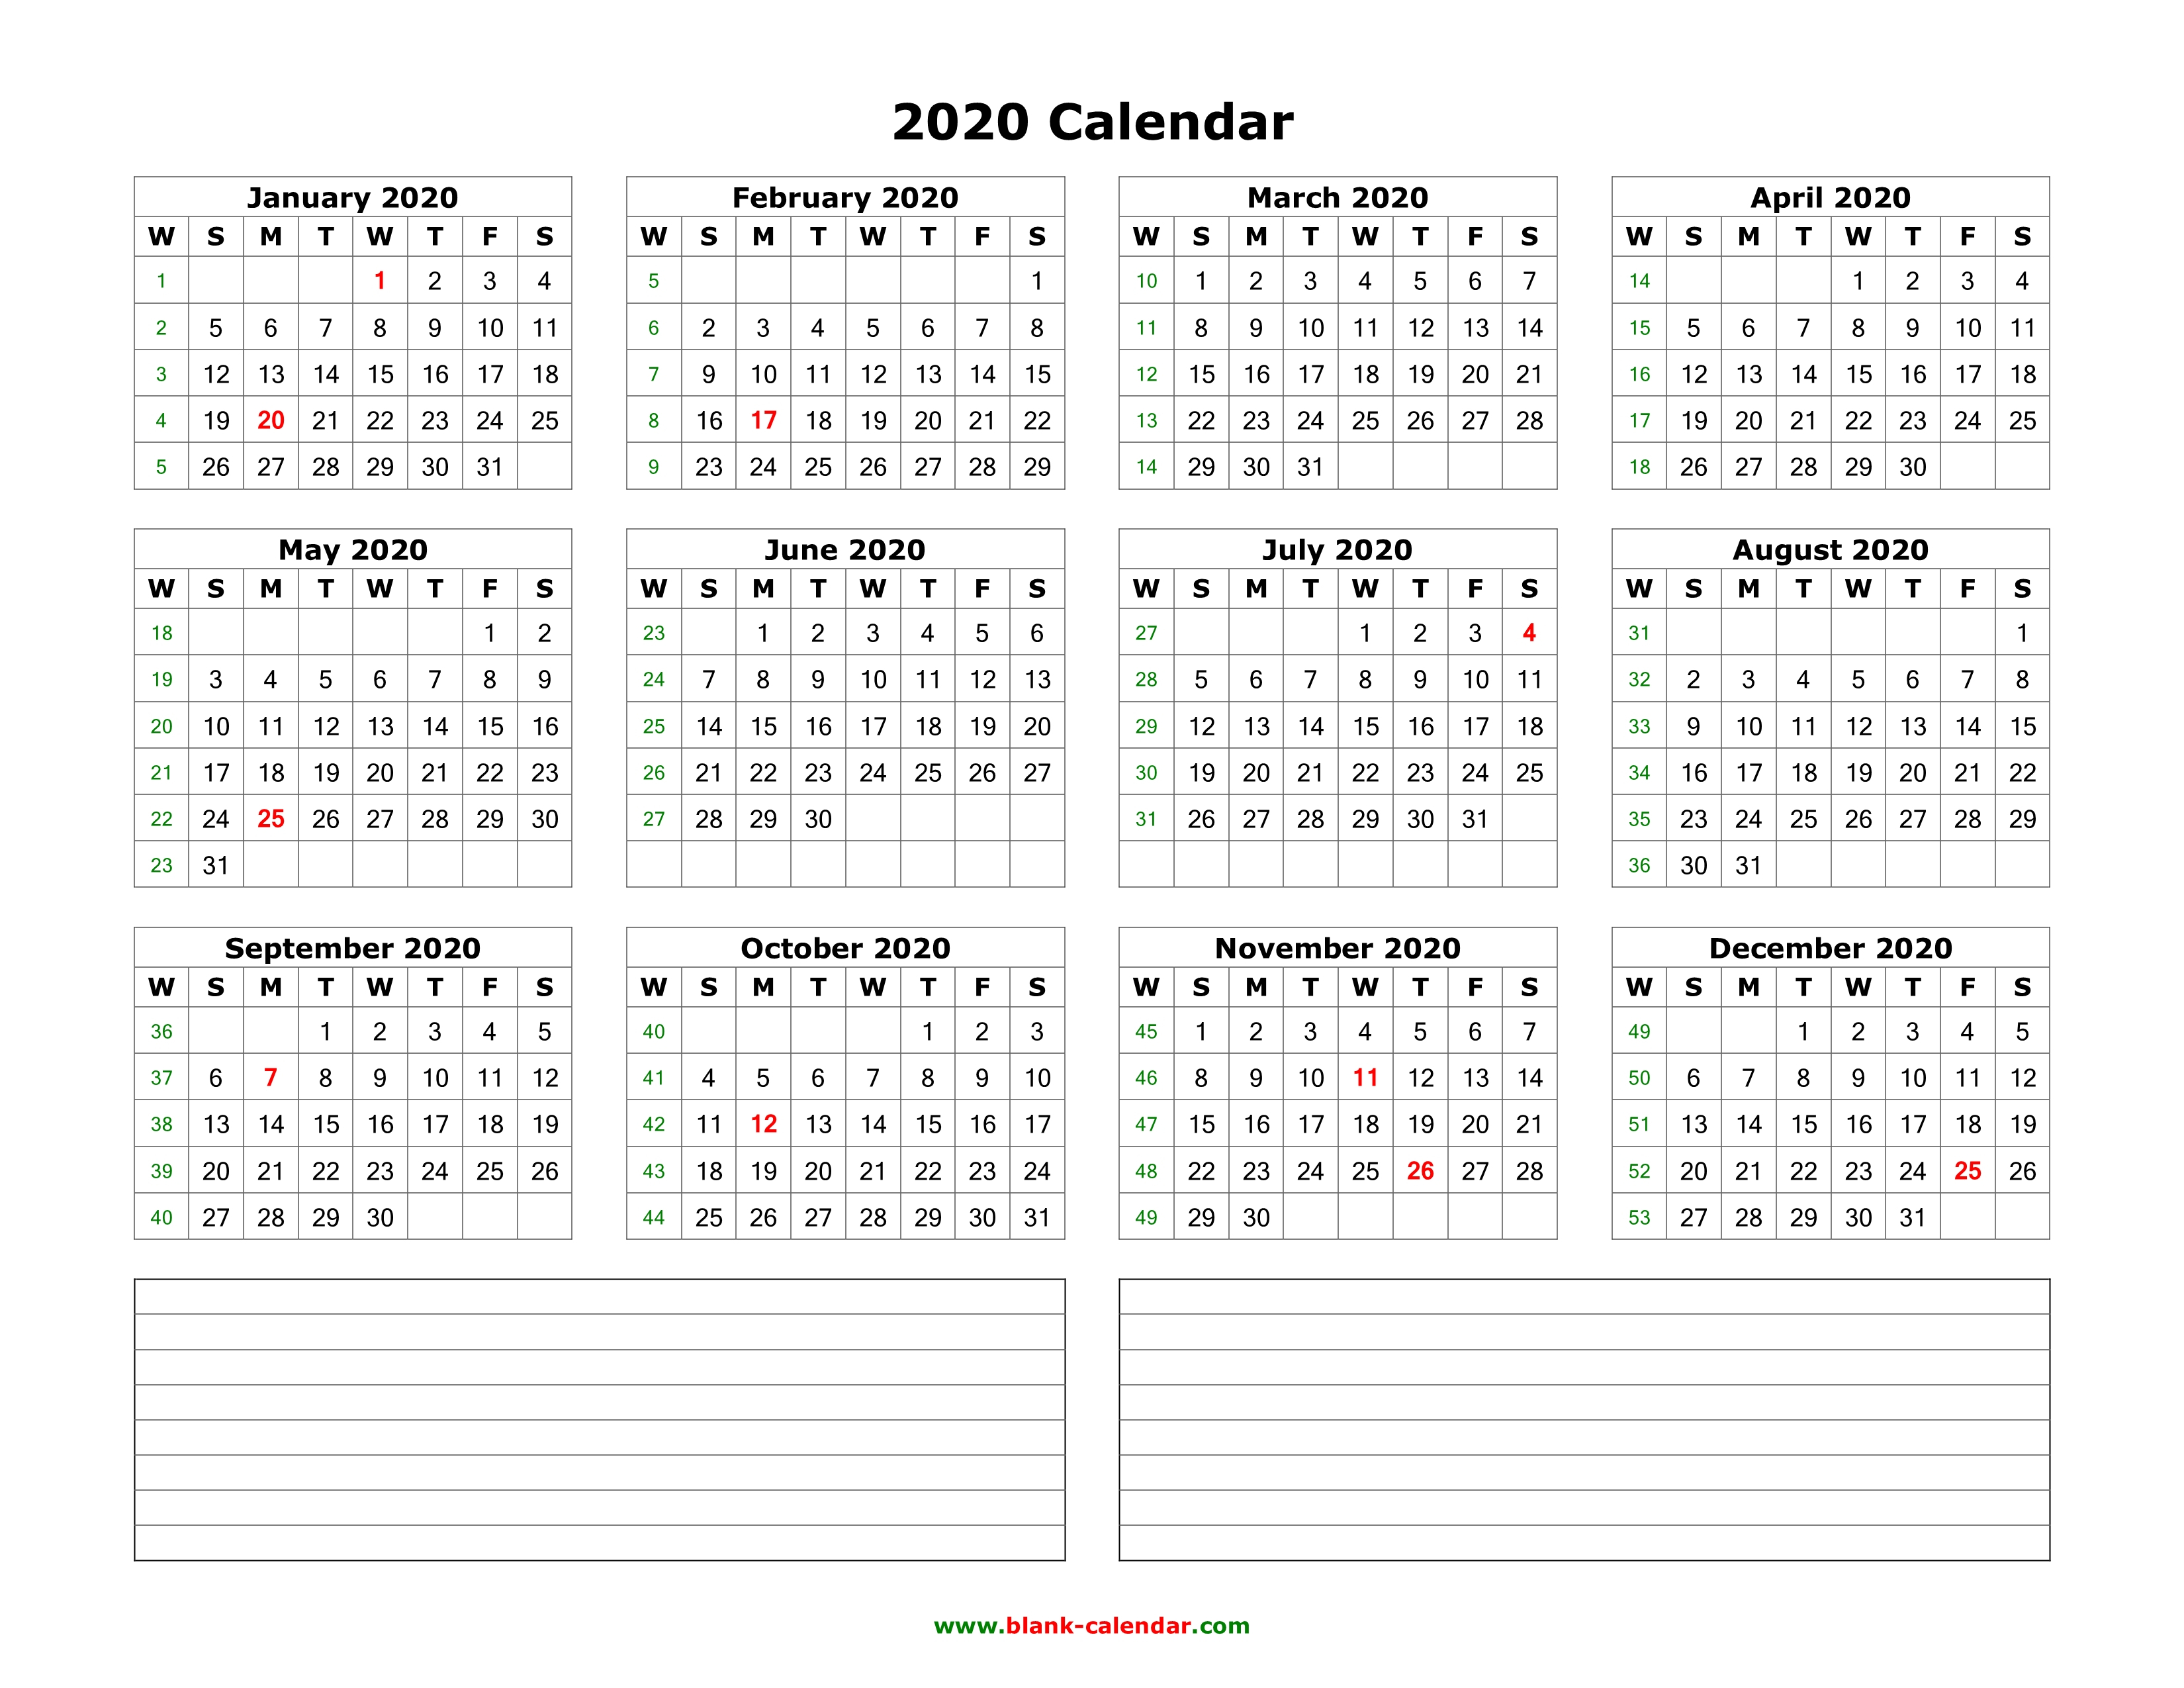 Download Blank Calendar 2020 With Space For Notes (12 Months On One in 2020 Calender With Space To Write